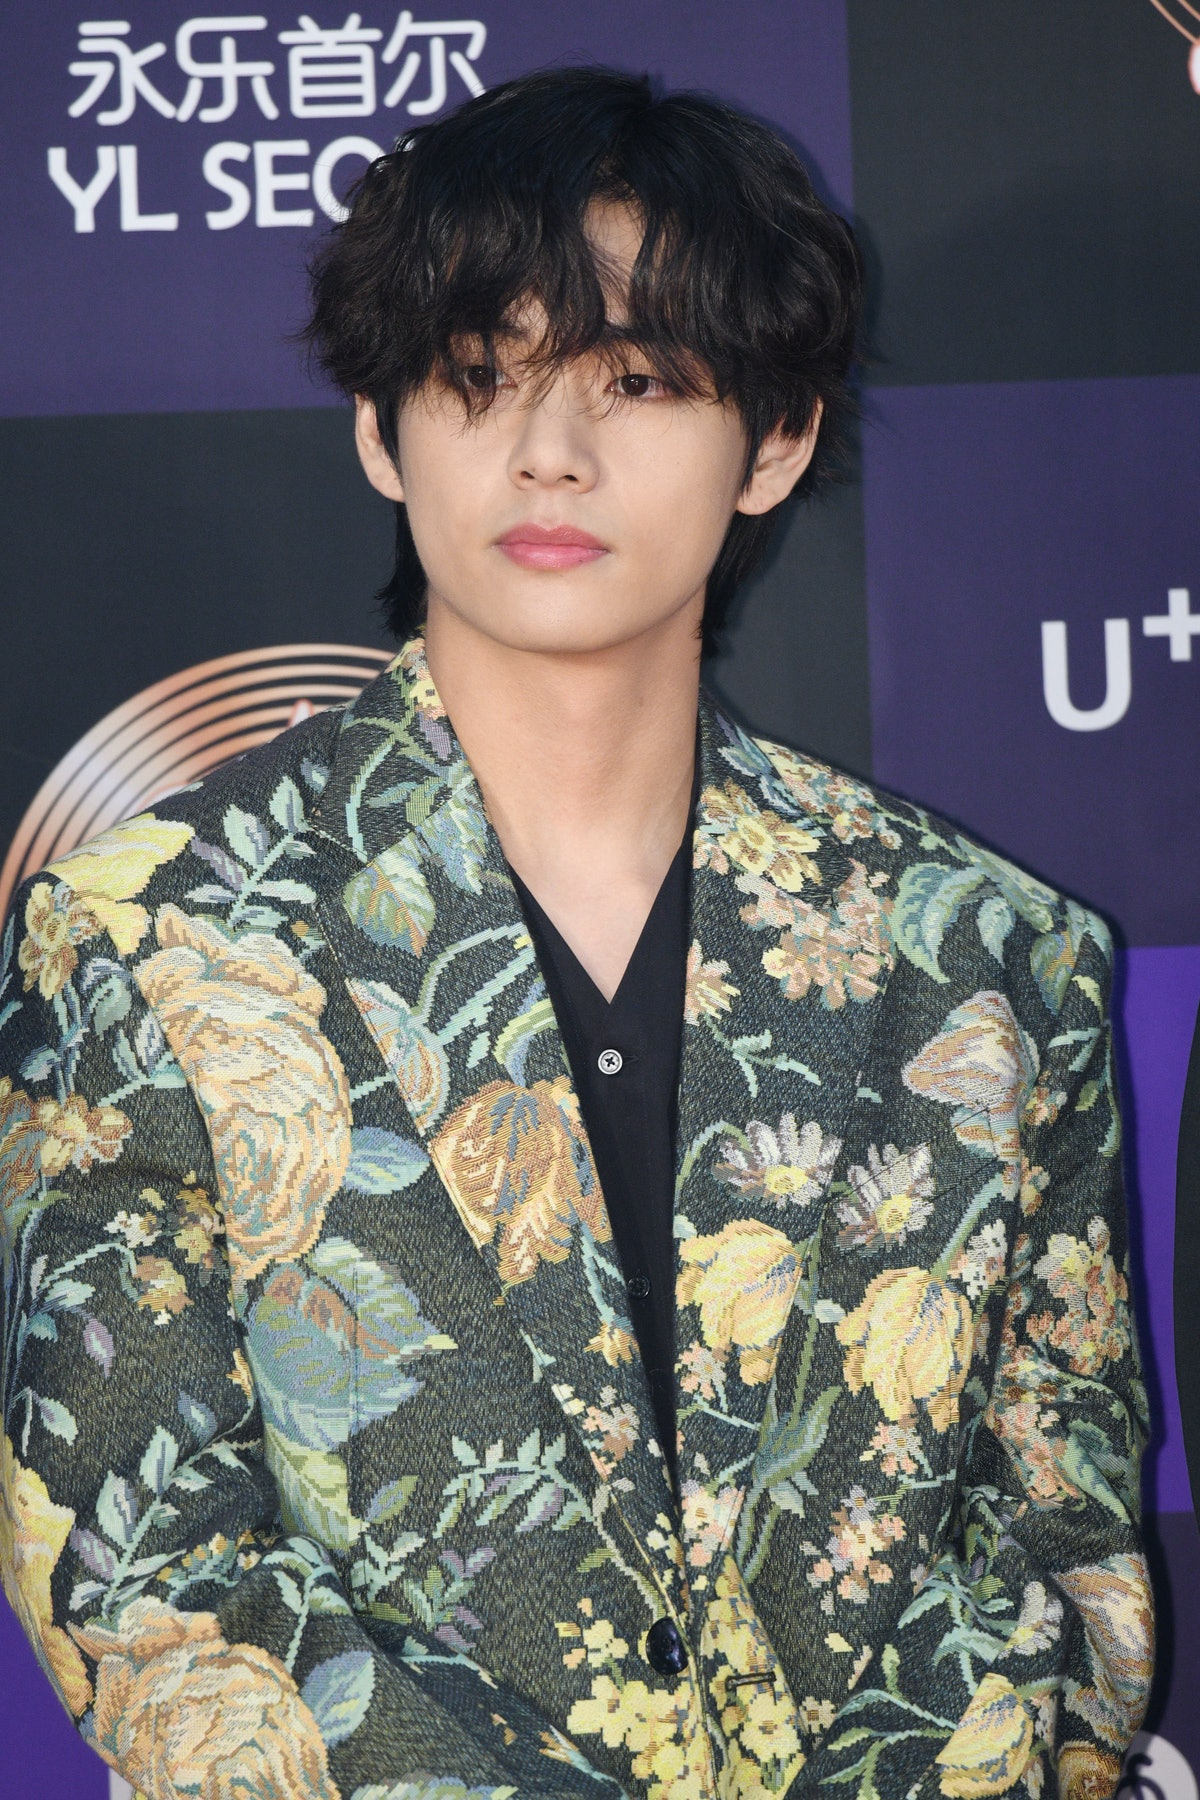 BTS' V hits the red carpet in a floral blazer.